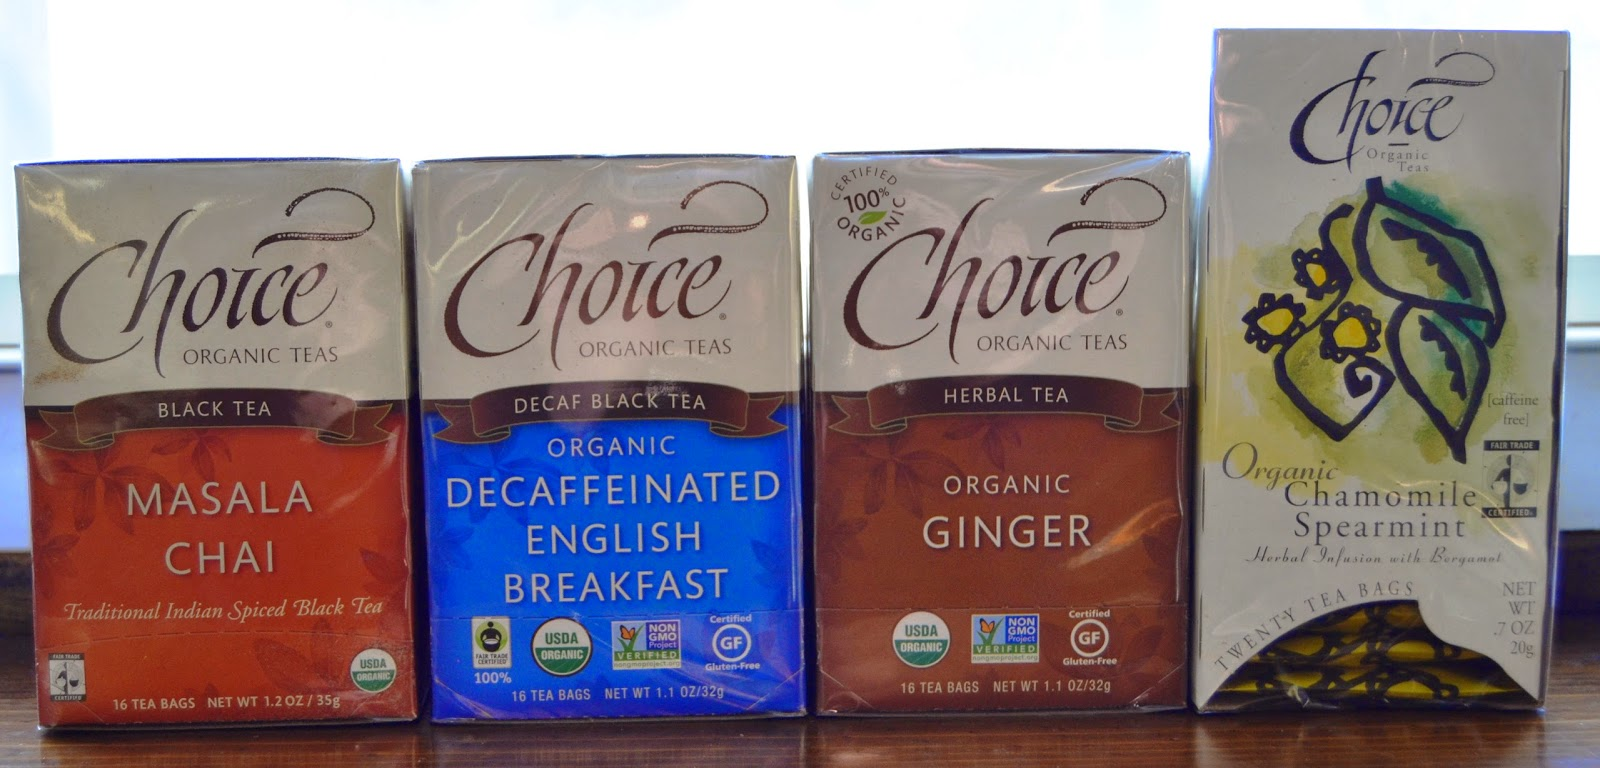 Choice Organic Teas